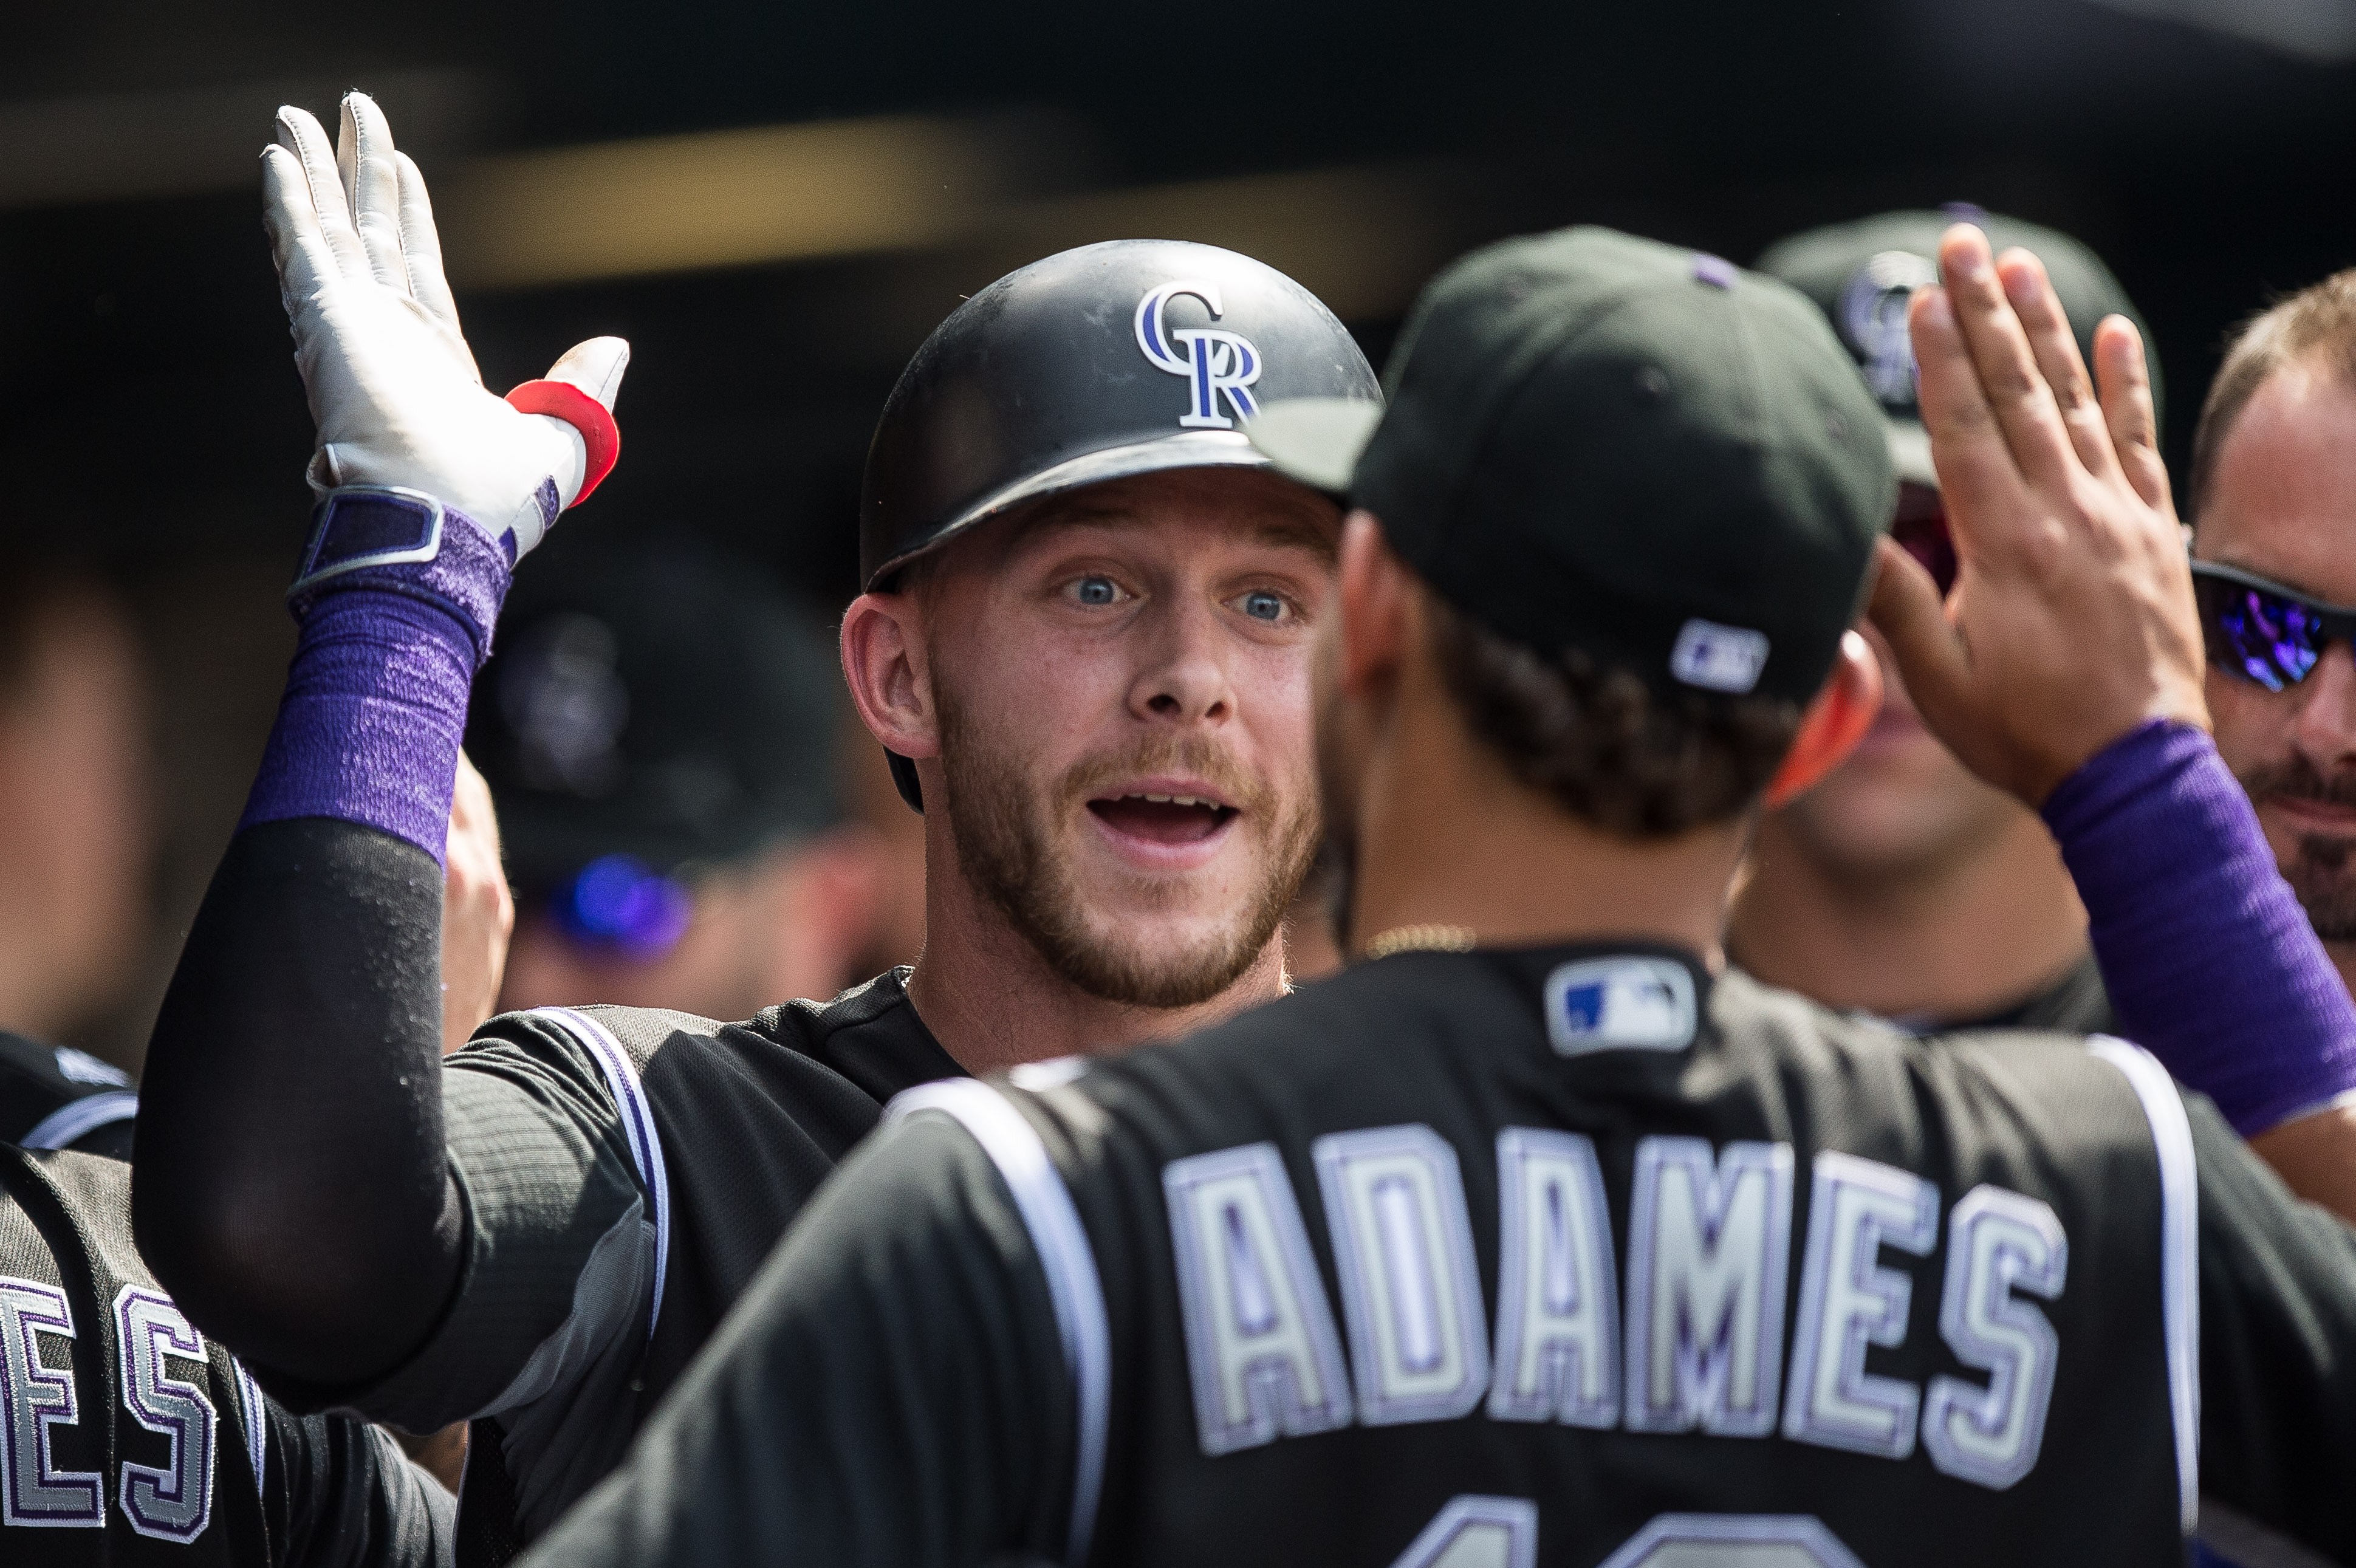 rockies shortstop trevor story likely out for season